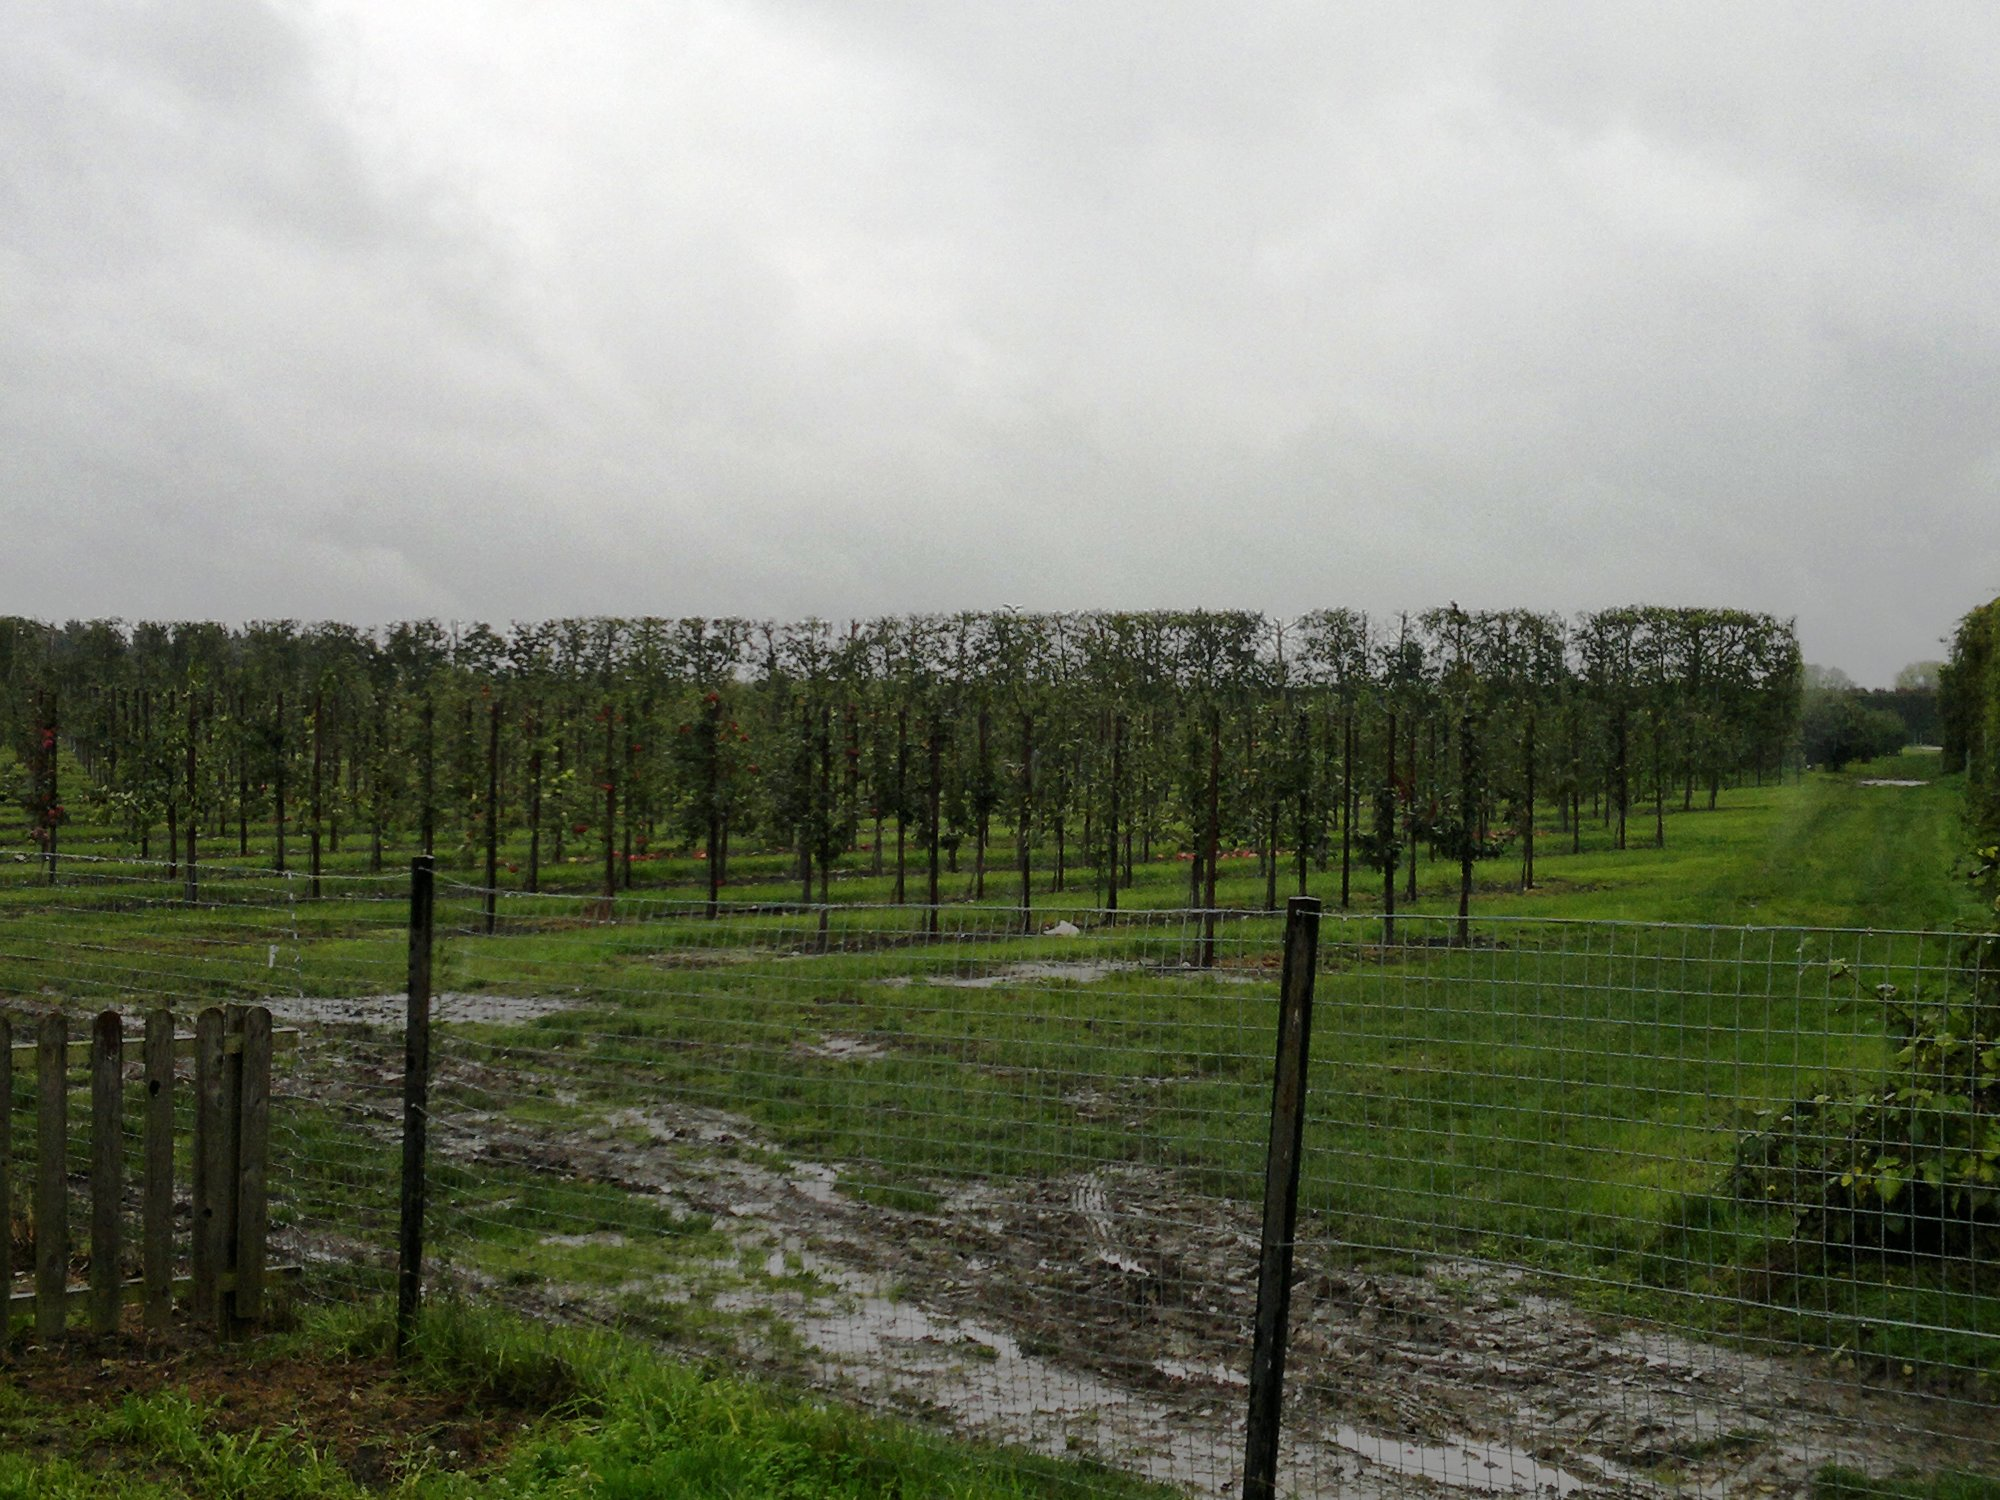 The orchard was not a tempting prospect on this rainy day